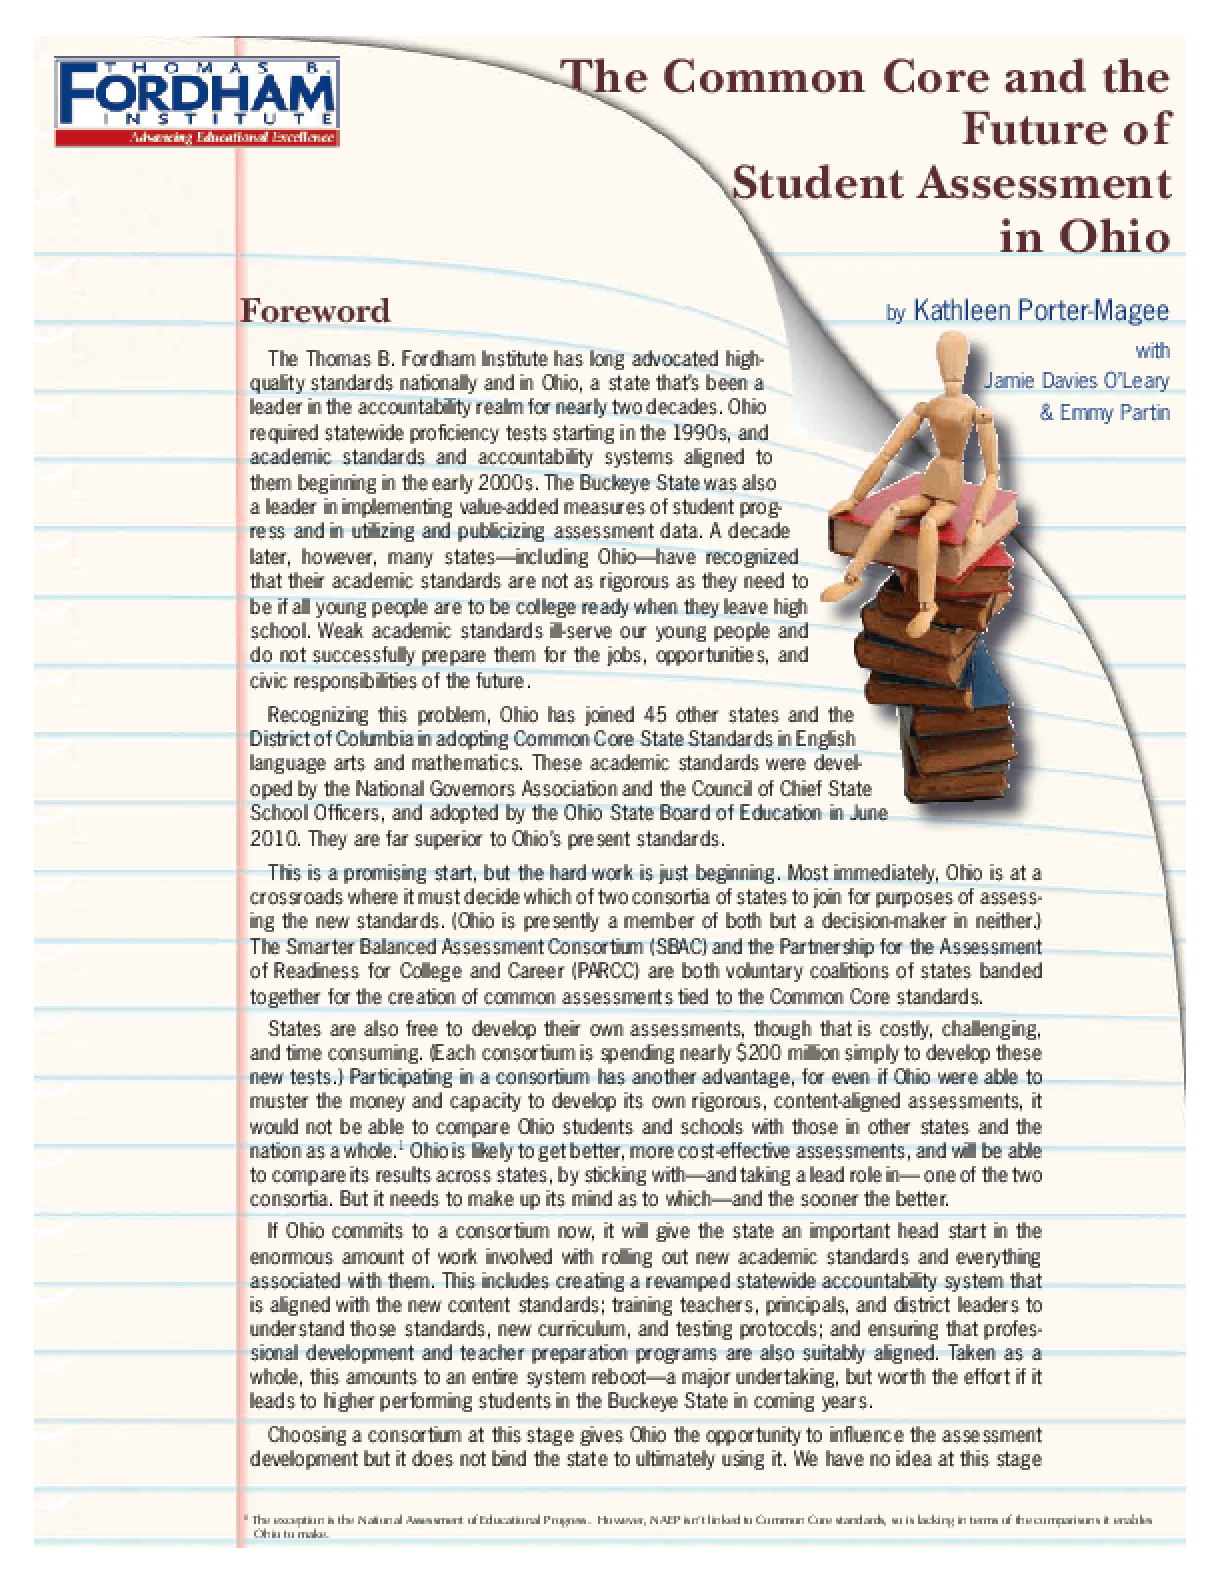 The Common Core and the Future of Student Assessment in Ohio